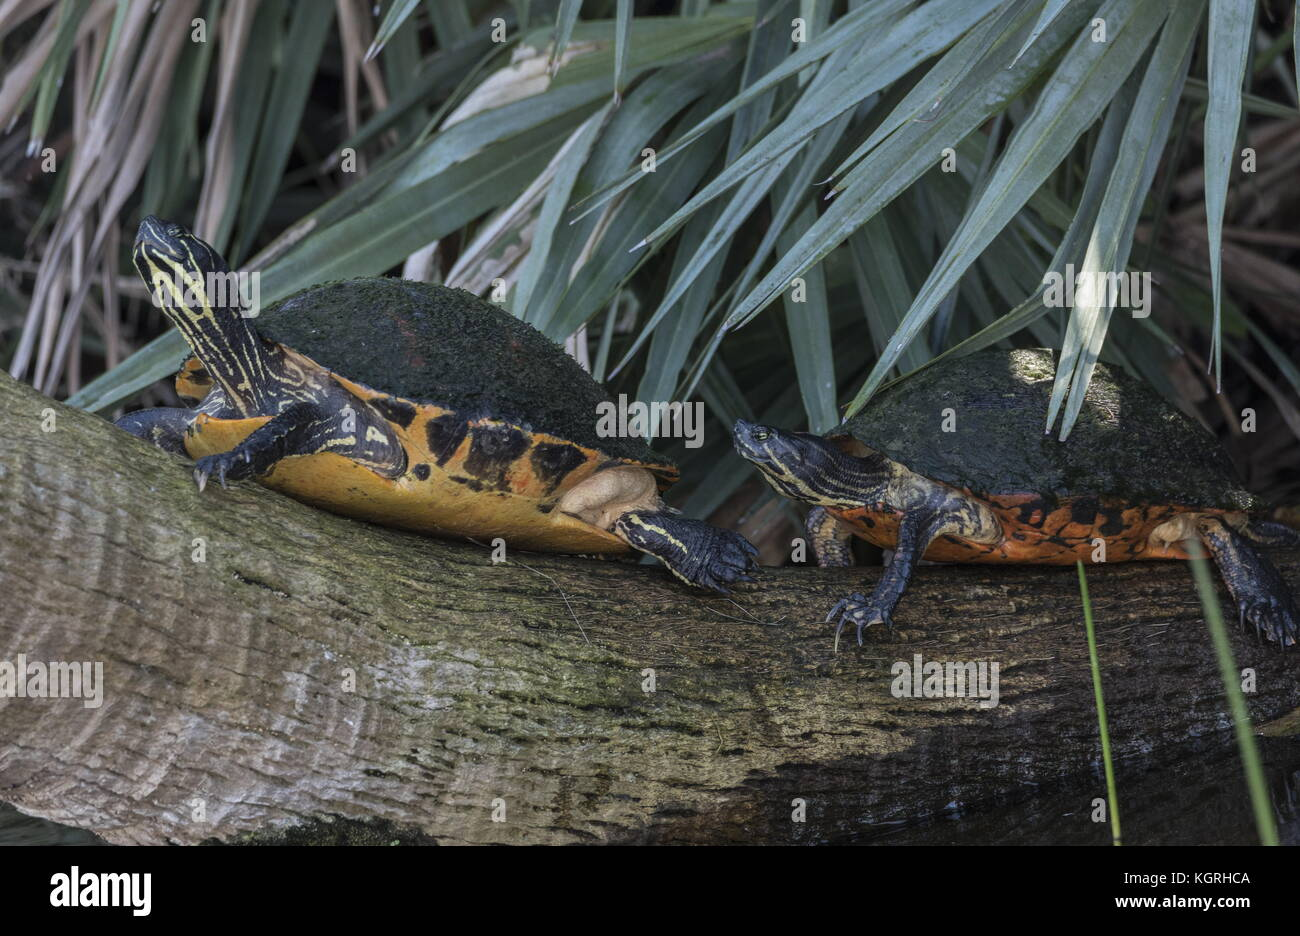 Florida red-bellied cooters, or Florida redbelly turtle, Pseudemys nelsoni basking on a log; Everglades, Florida. Stock Photo